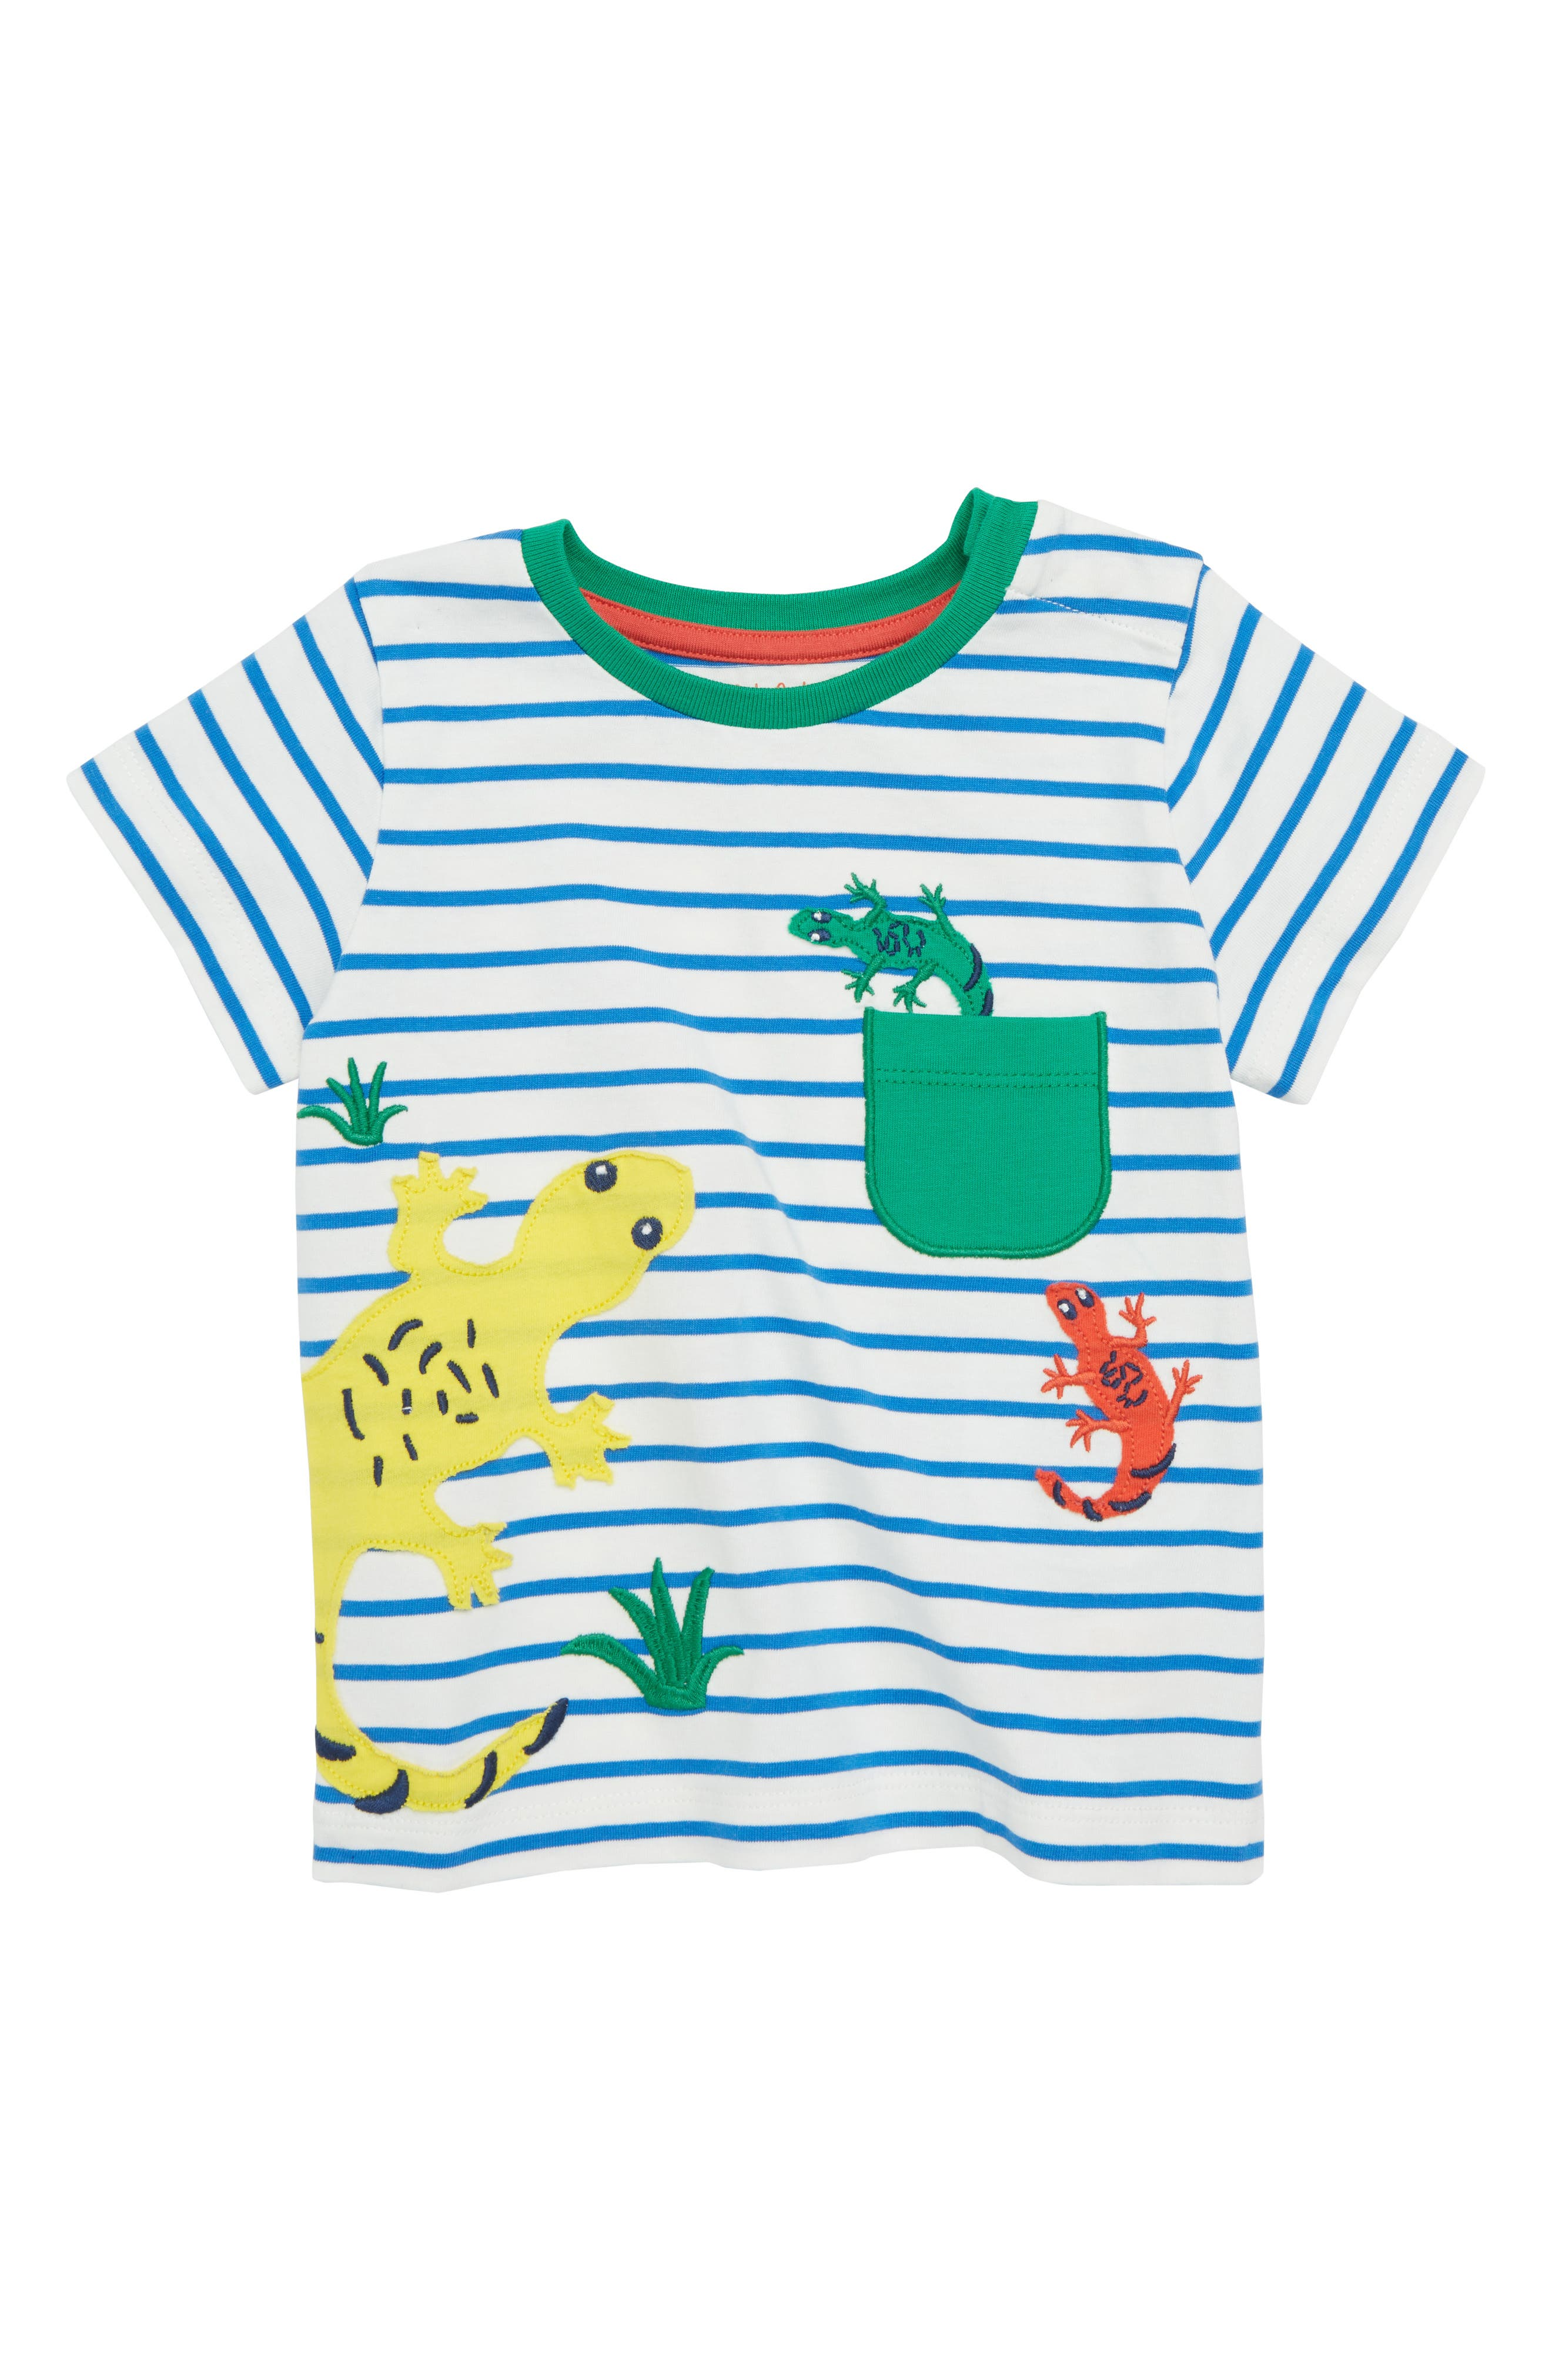 Pocket Friends T-Shirt,                             Main thumbnail 1, color,                             Skipper Blue